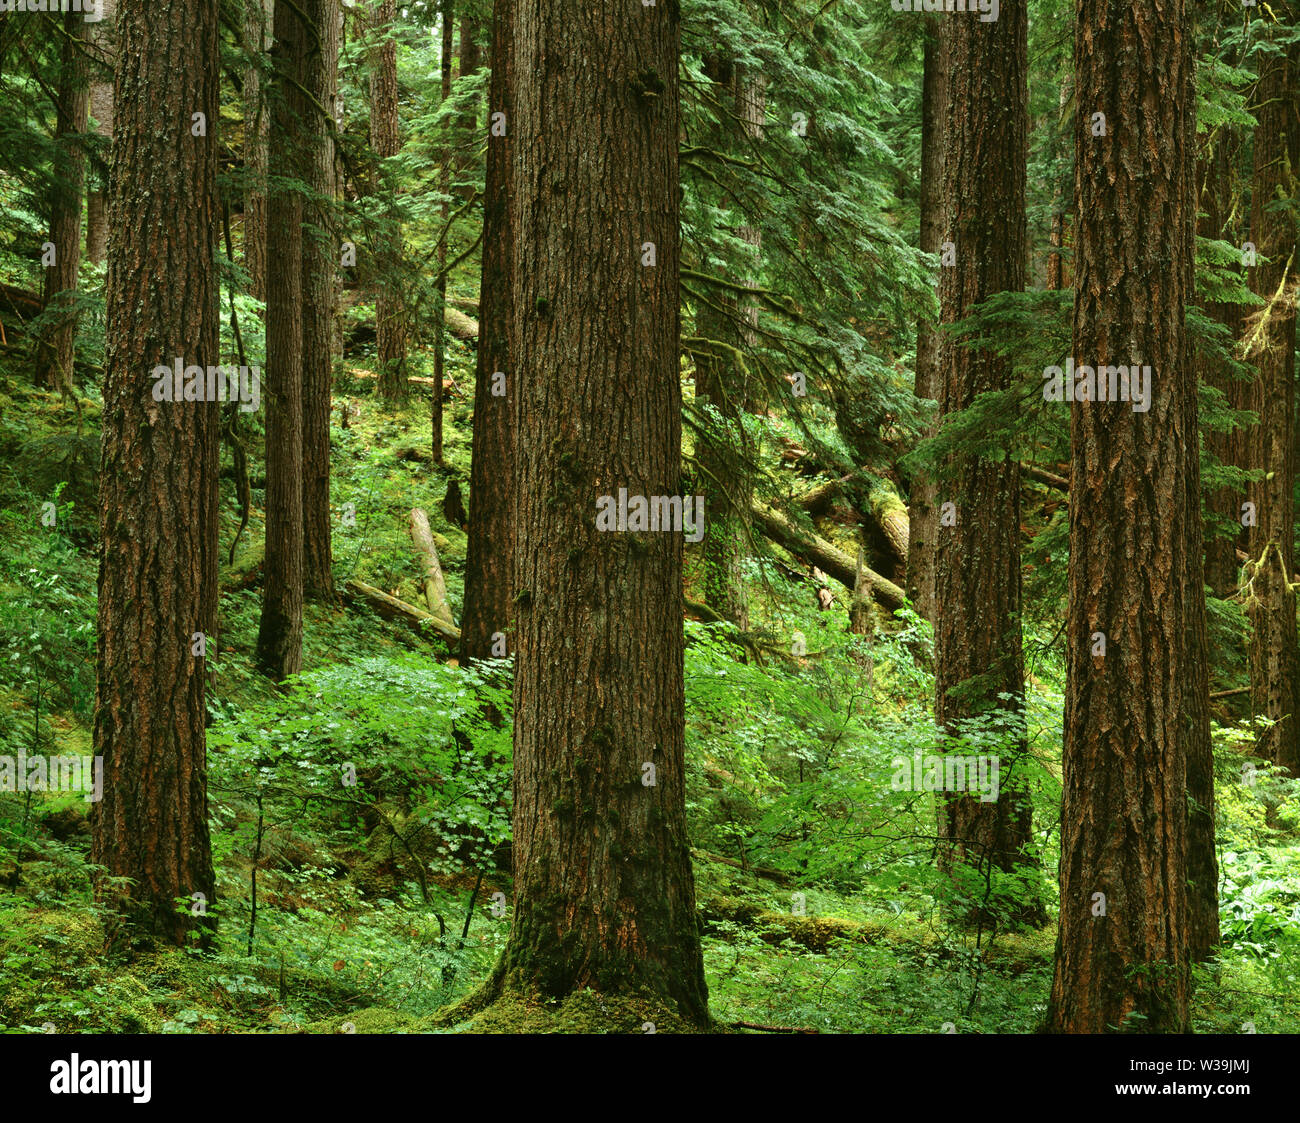 USA, Washington, Mt. Rainier National Park, Trunks of Douglas fir and western hemlock in old growth coniferous forest; Ohanepecosh Valley. Stock Photo